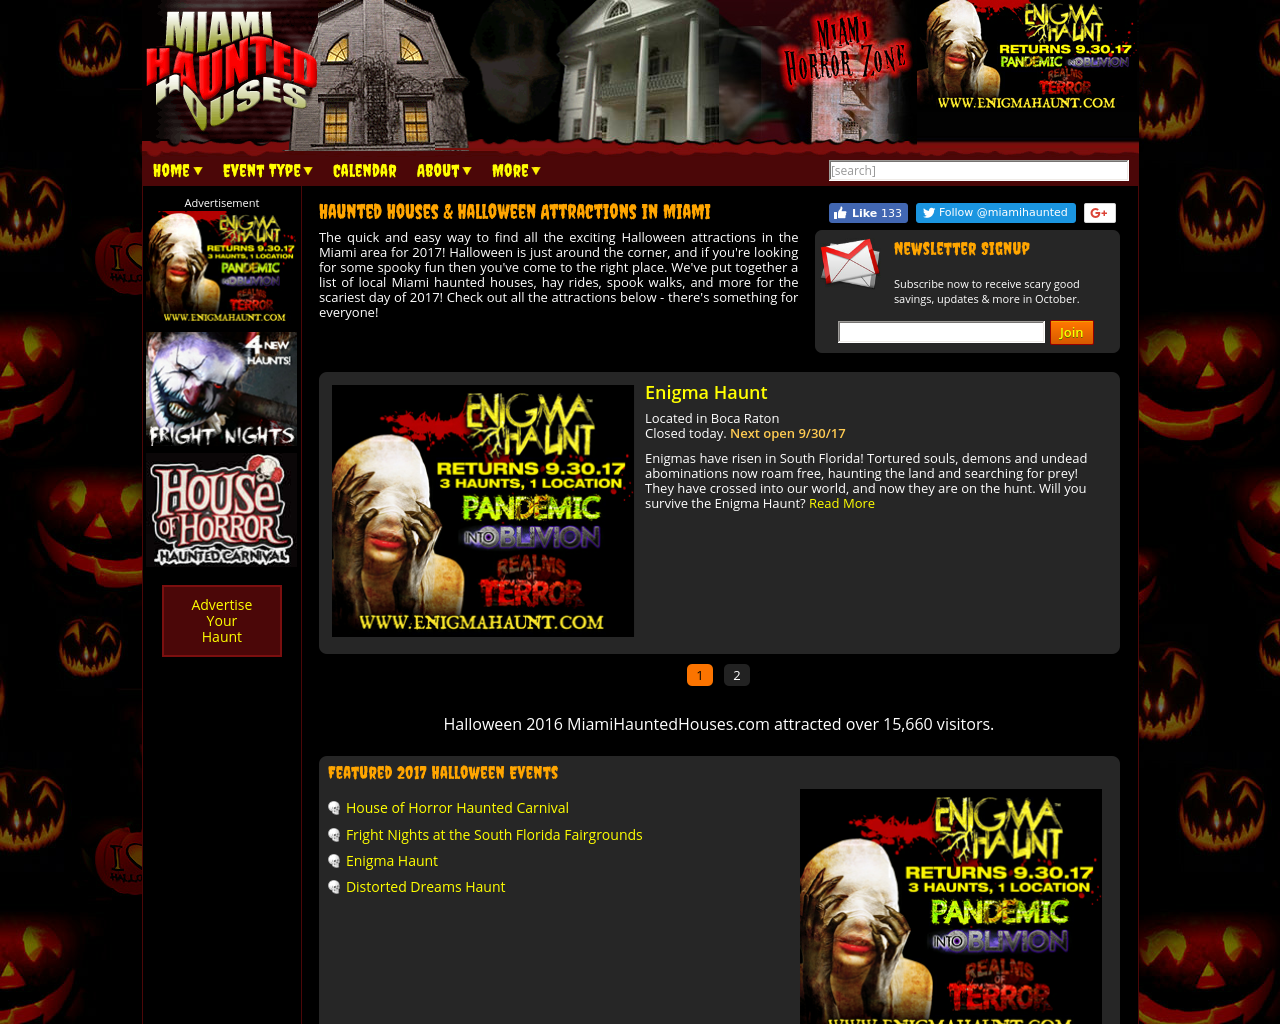 Miami-Haunted-Houses-Advertising-Reviews-Pricing